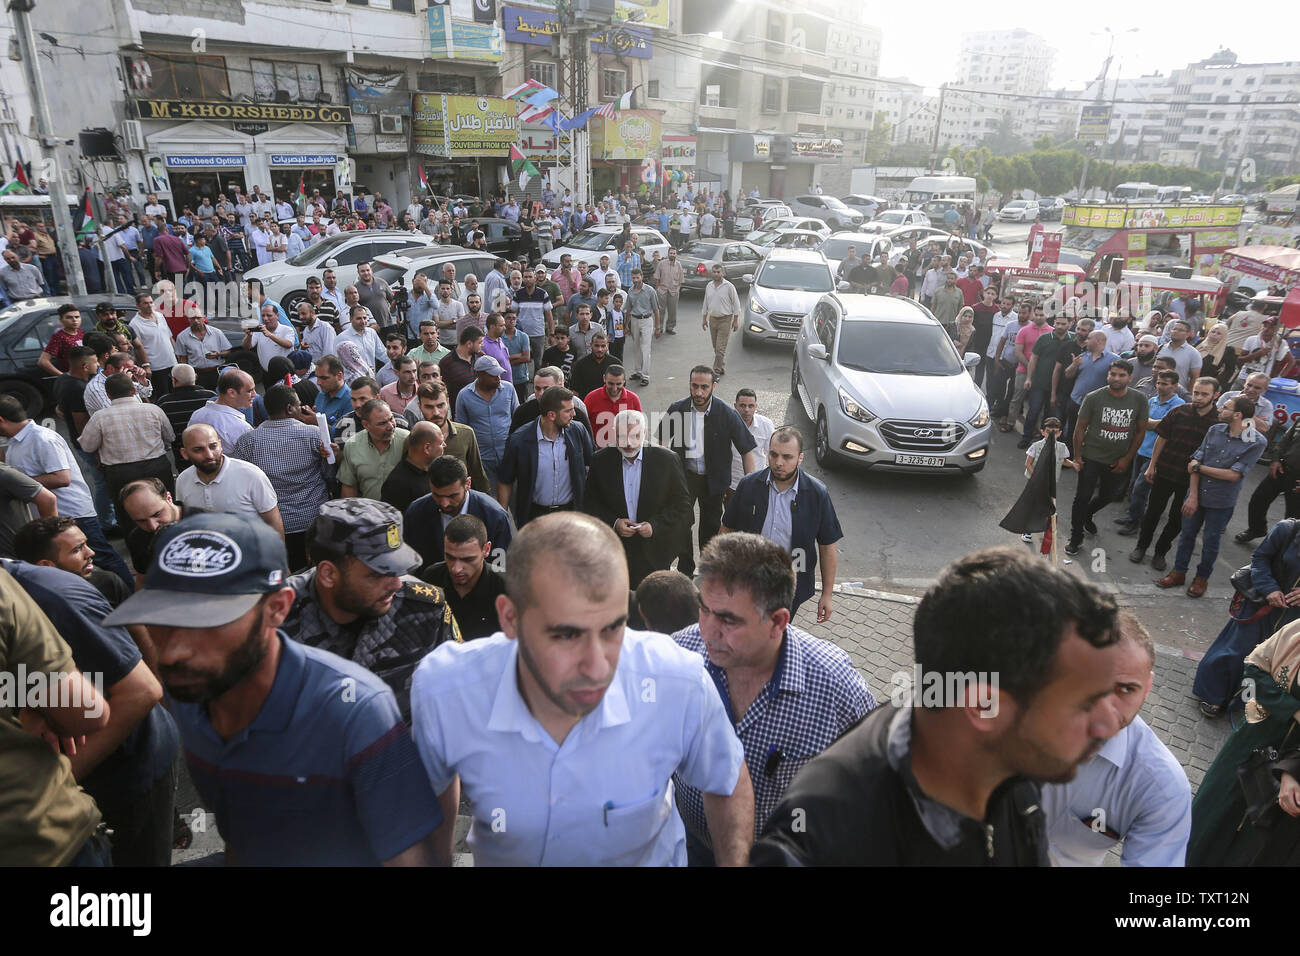 Gaza City, Palestinian Territories. 25th June, 2019. Islamist Hamas movement Chairman Ismail Haniya (C) arrives to attend a meeting against the US-sponsored conference on Palestinian economic development in Bahrain. The two-day meeting aims at raising 50 billion dollars in investment over 10 years, but Palestinian leaders' refusal to take part is casting serious doubt about the usefulness of the event, called Peace to Prosperity Workshop. Credit: Mohammed Talatene/dpa/Alamy Live News - Stock Image